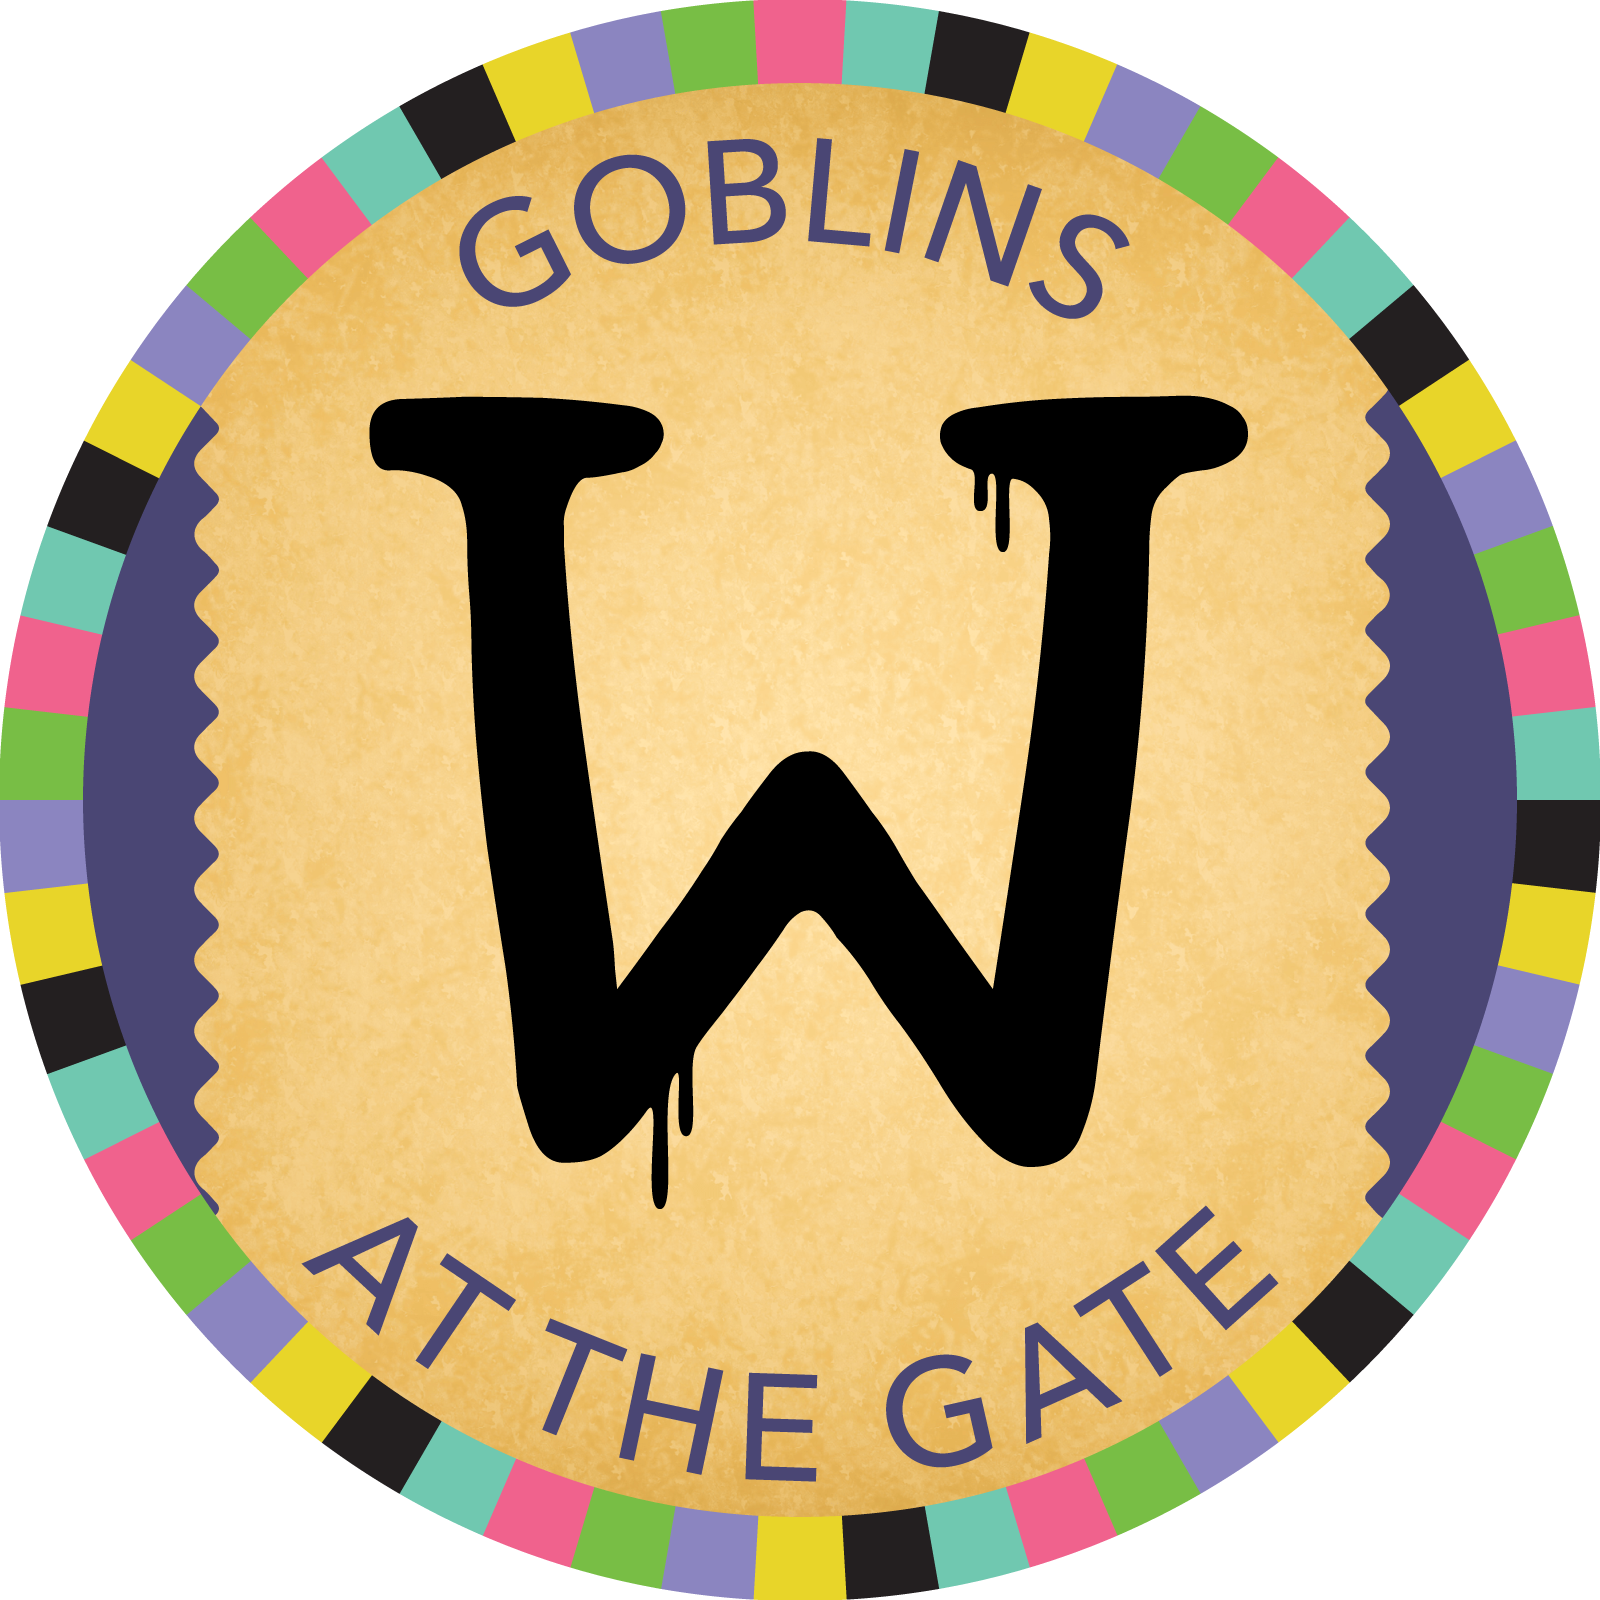 Goblins At The Gate badge image